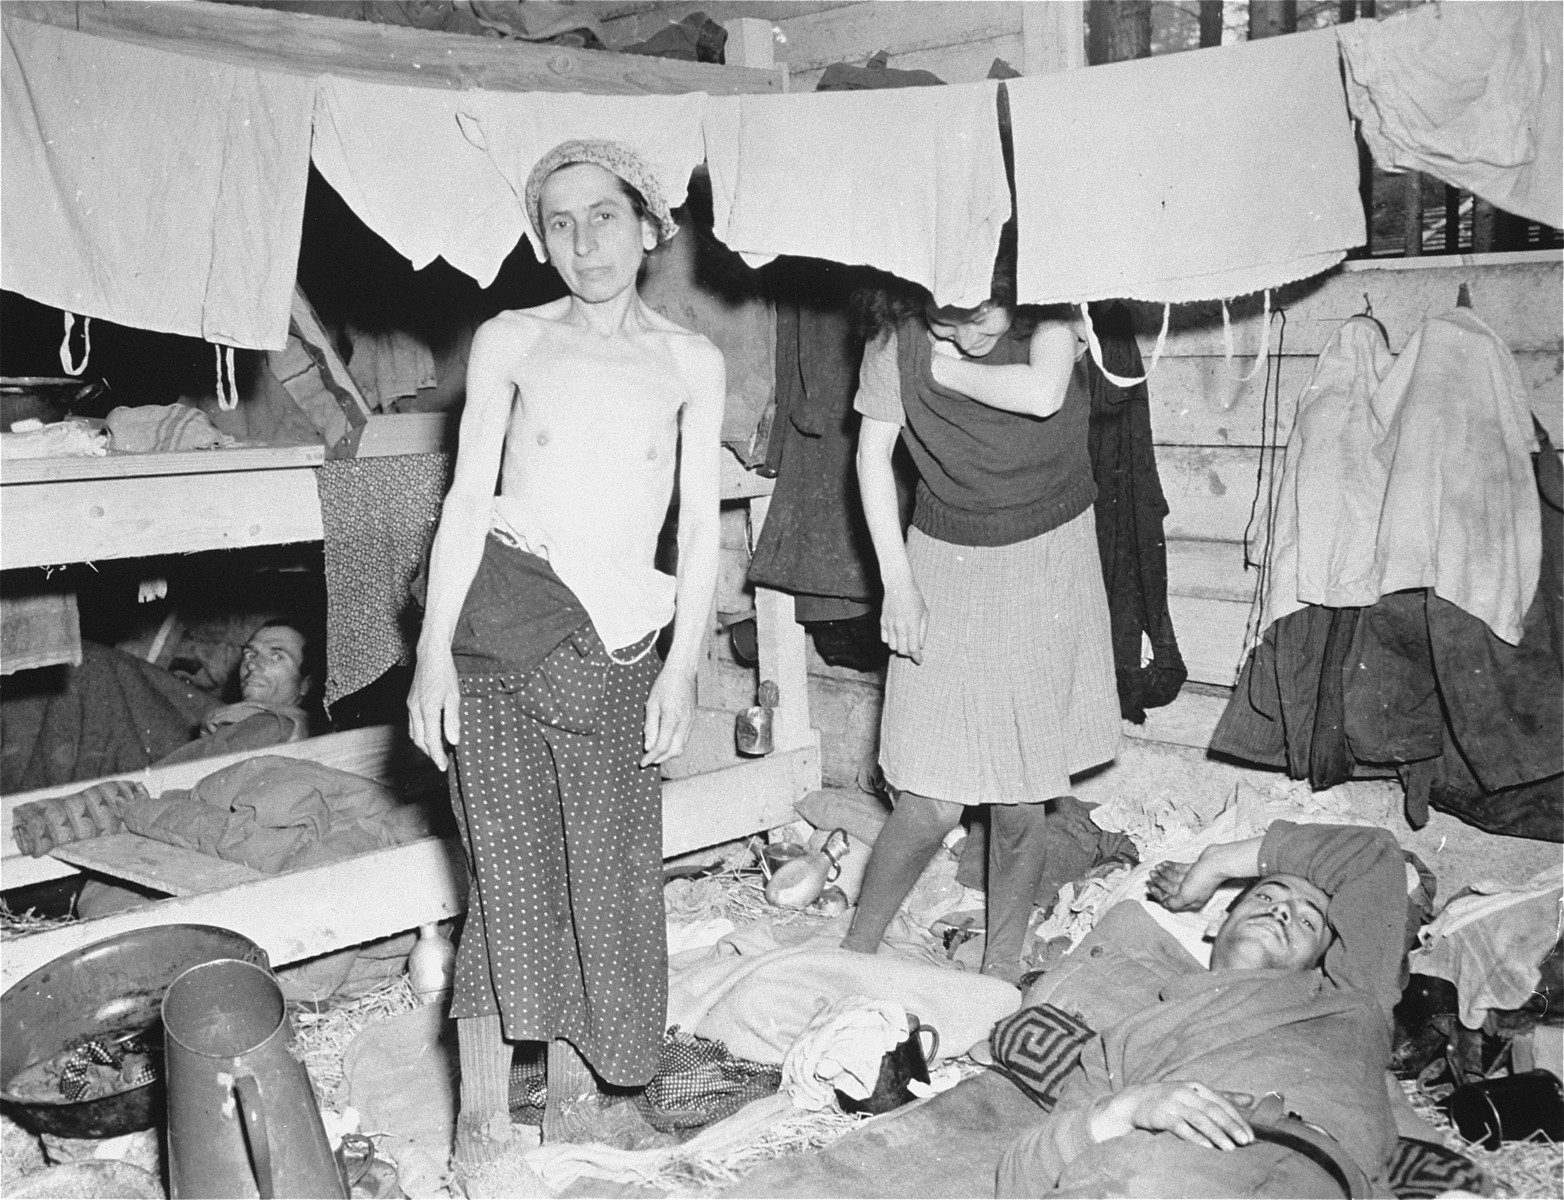 Emaciated female survivors stand beneath hanging laundry in the newly liberated Gunskirchen concentration camp.